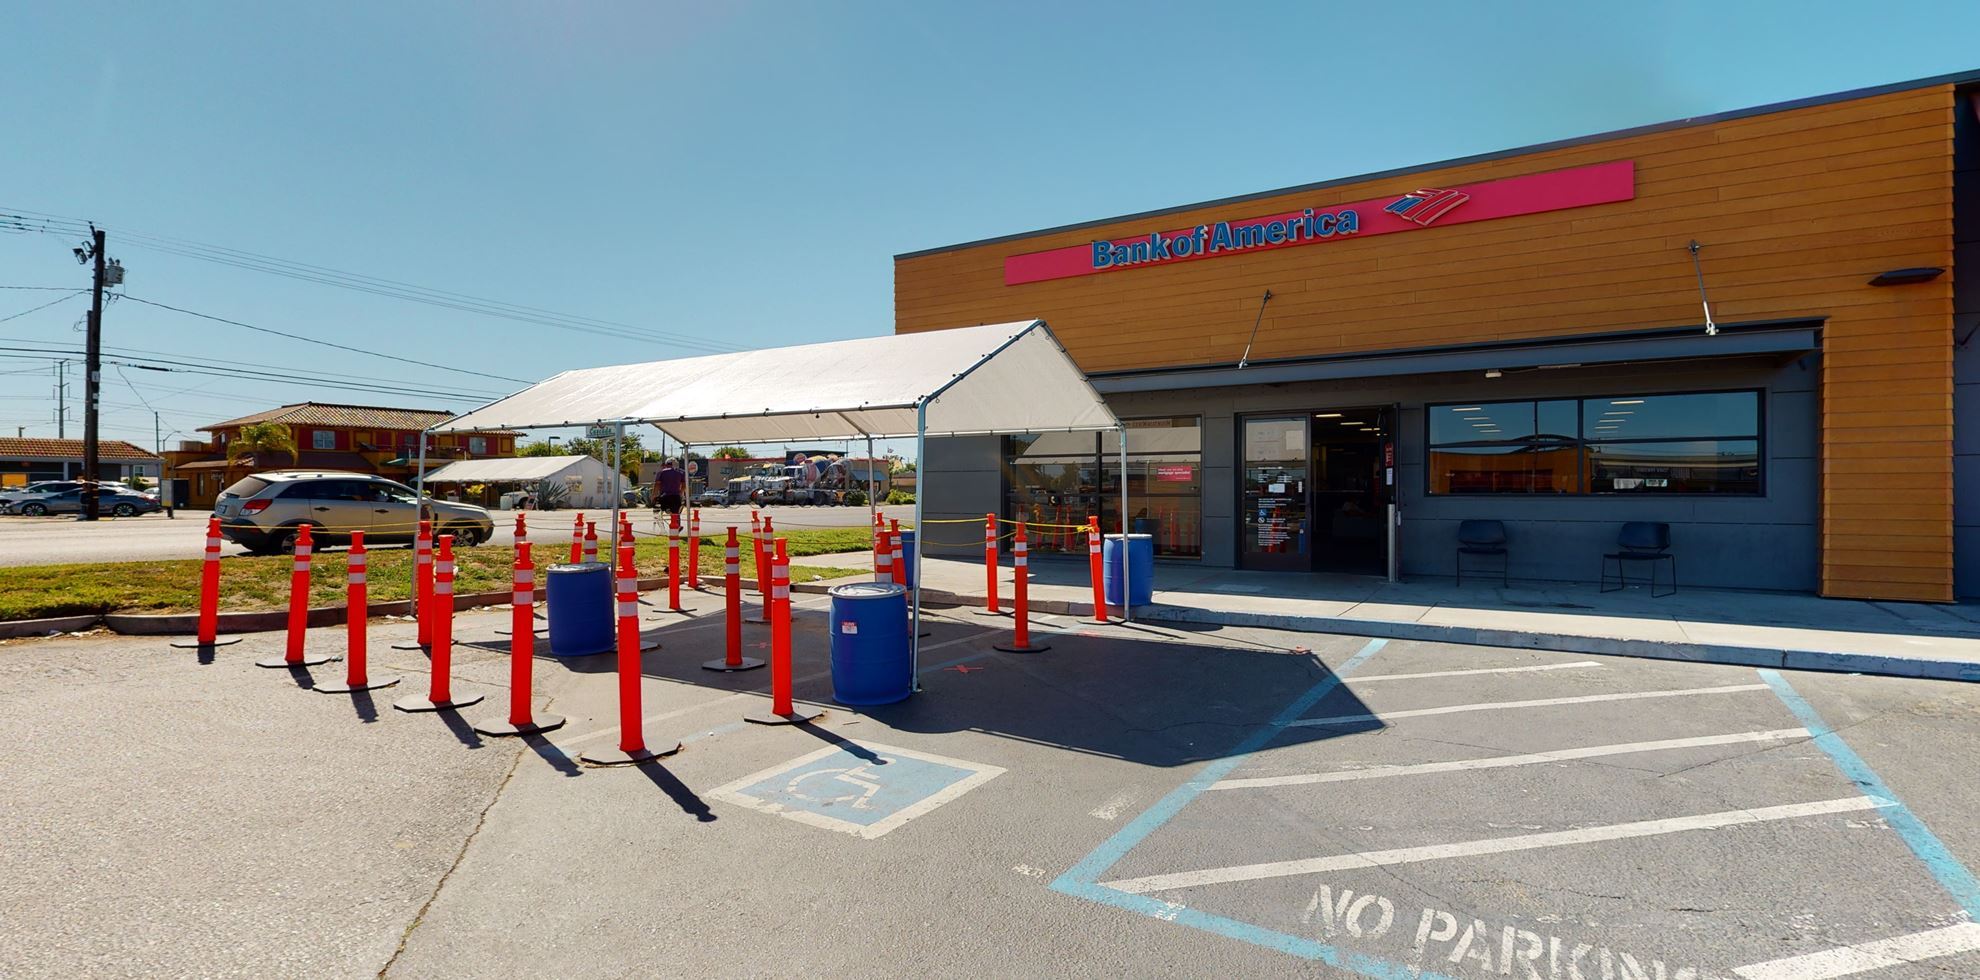 Bank of America financial center with walk-up ATM | 2617 Mitchell Rd, Ceres, CA 95307